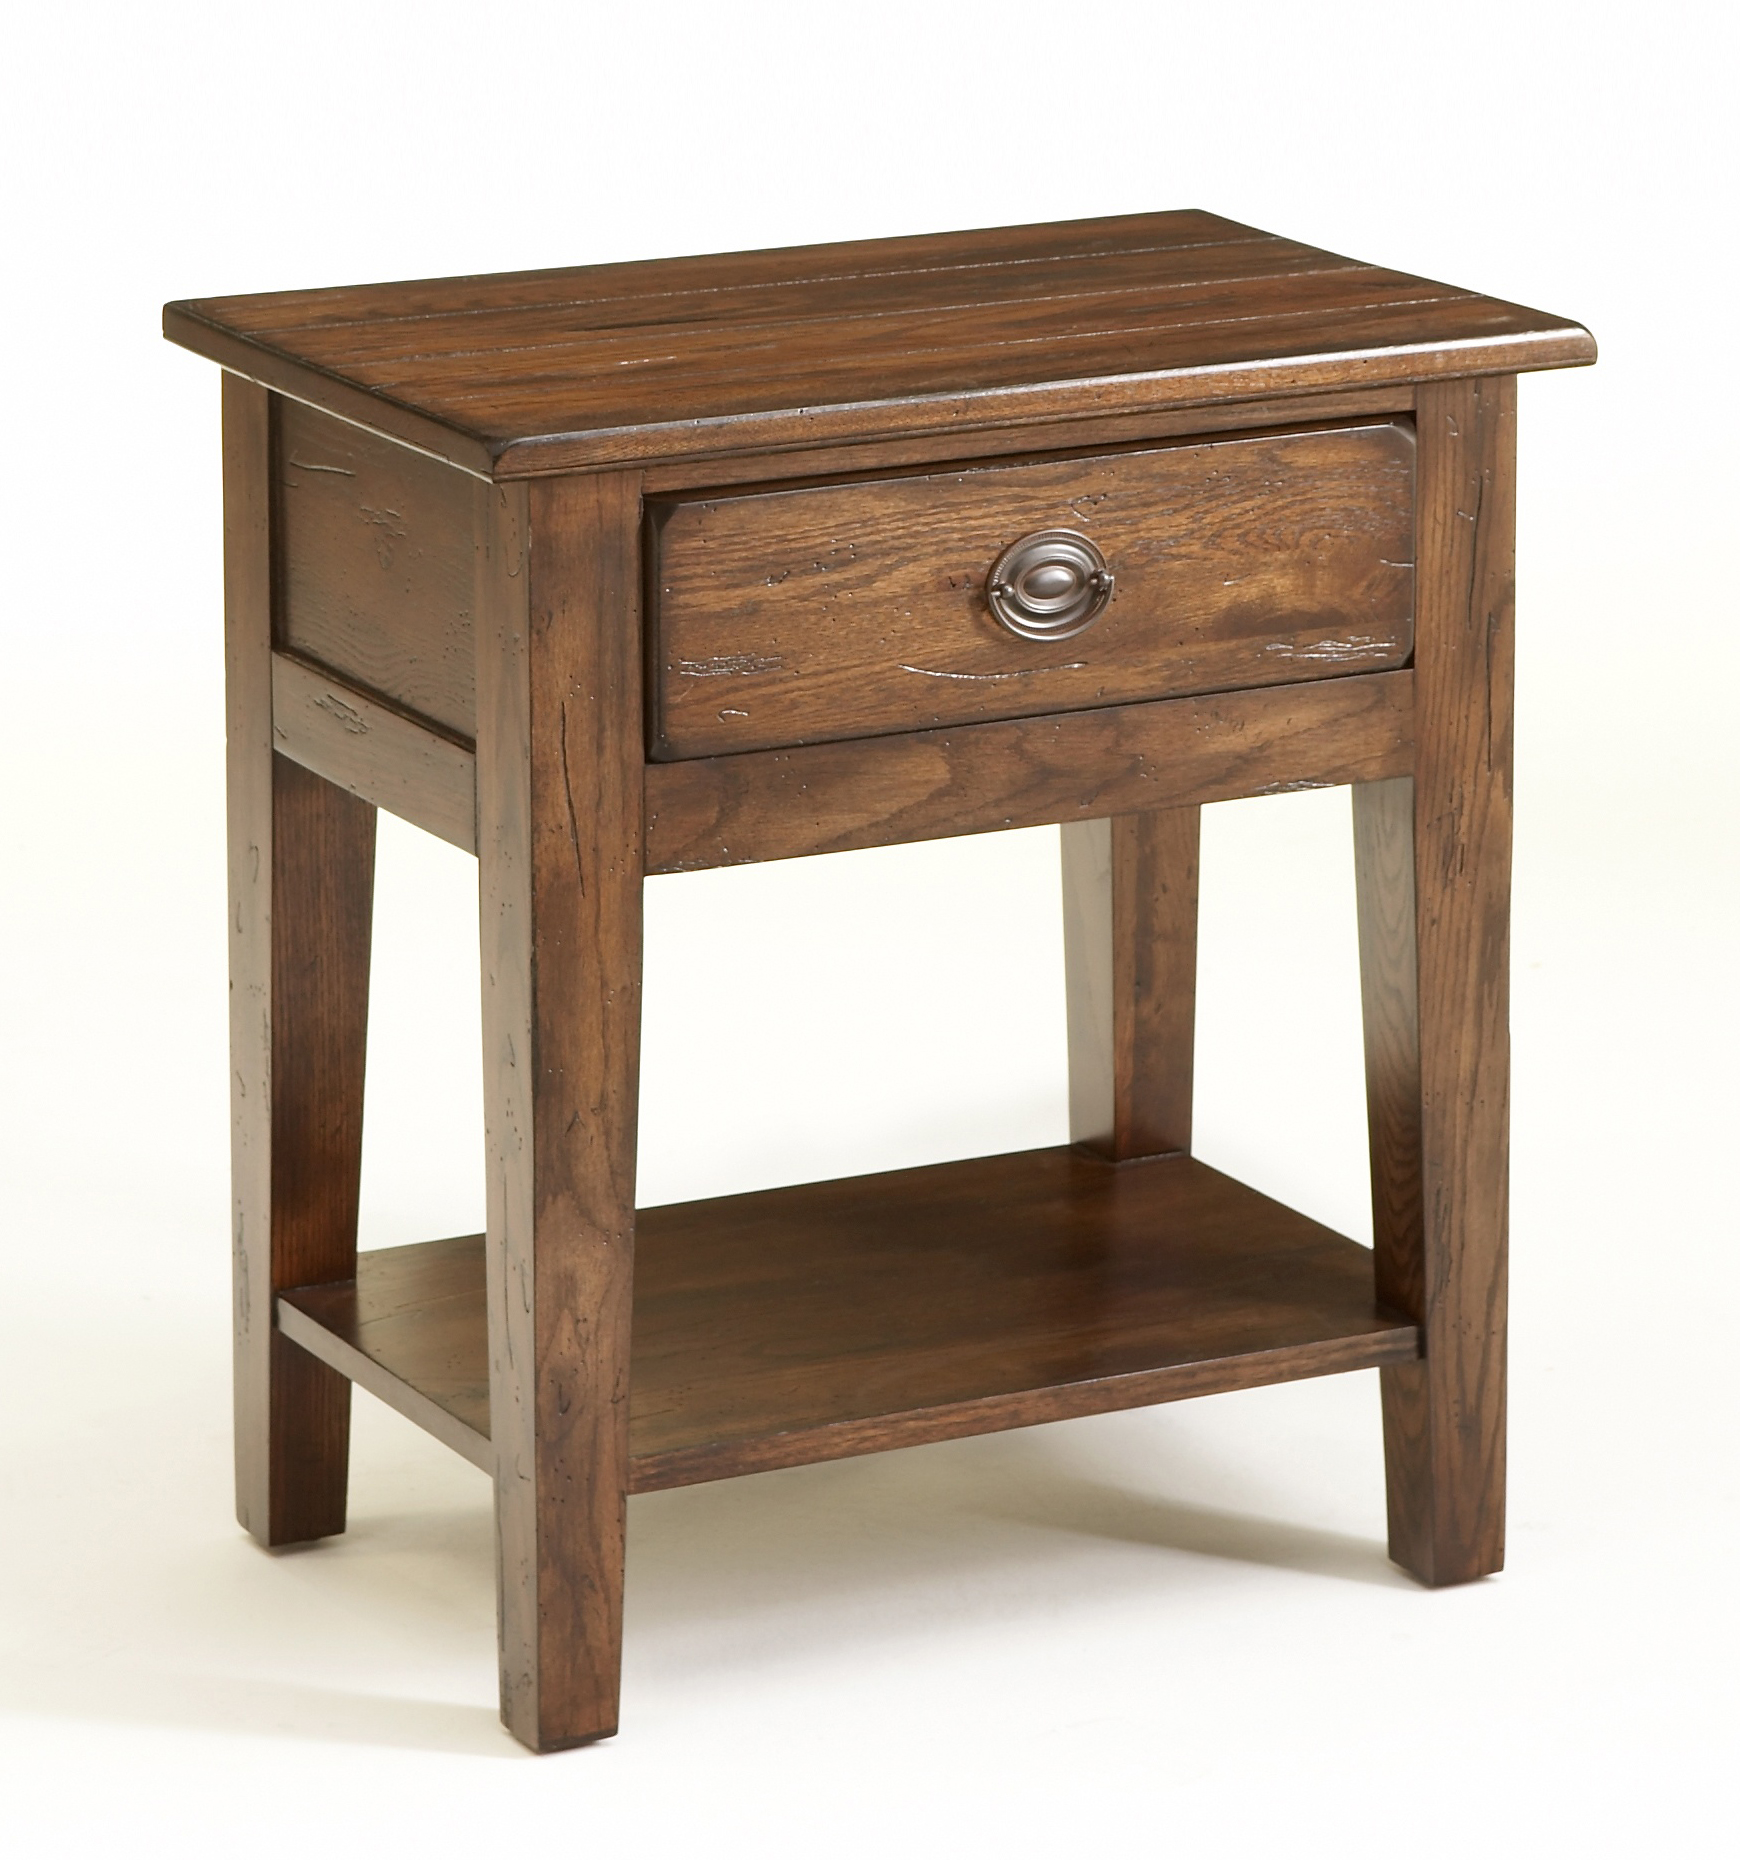 Enticing Solid Wood Night Stands | Interesting Rustic Nightstand